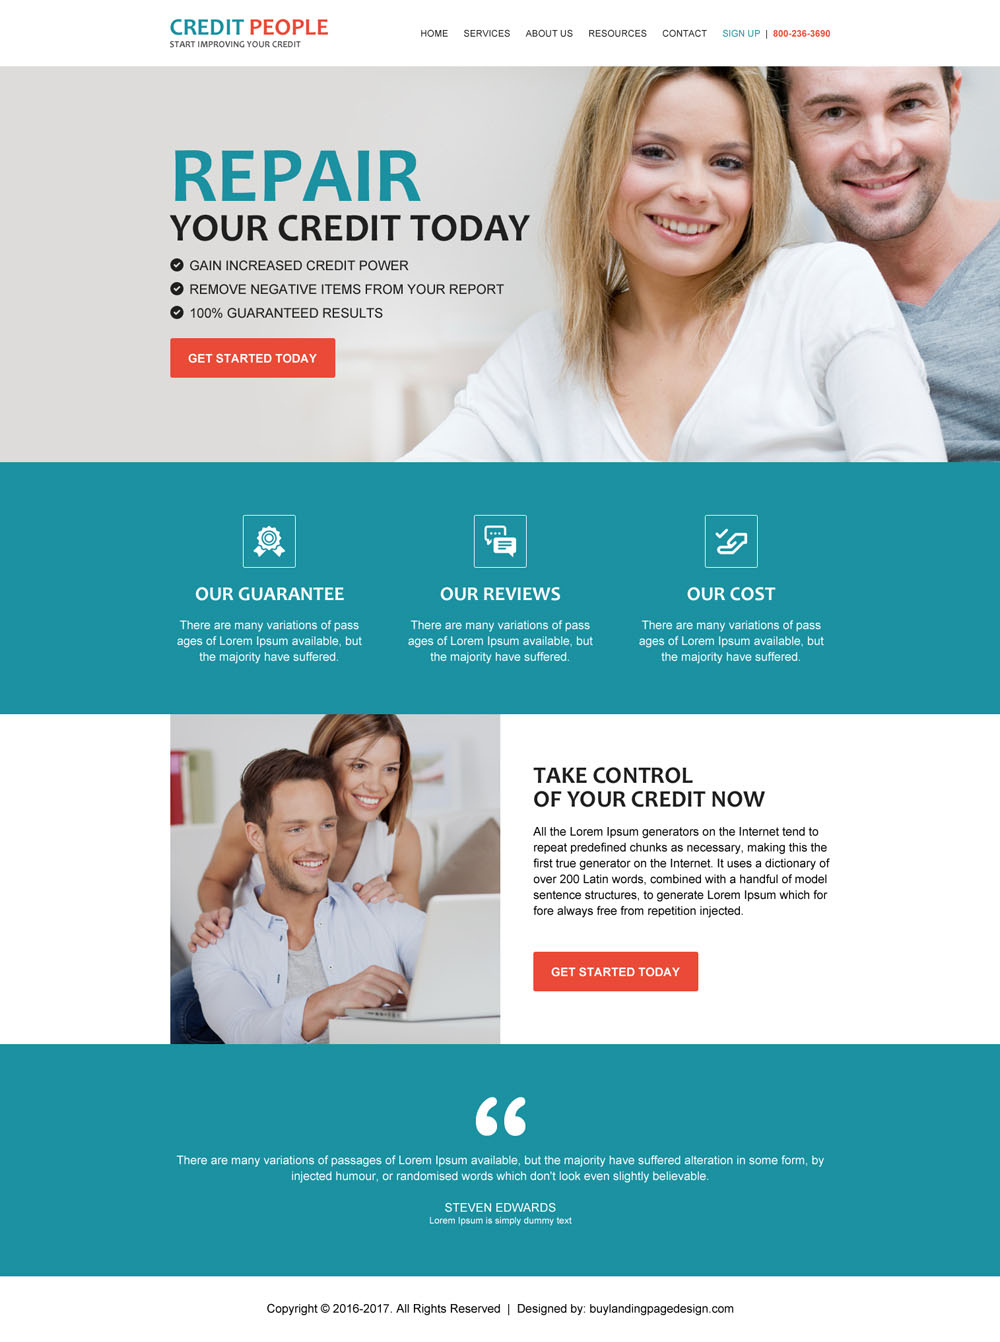 best-credit-repair-companies-html-website-design-templates-002-index